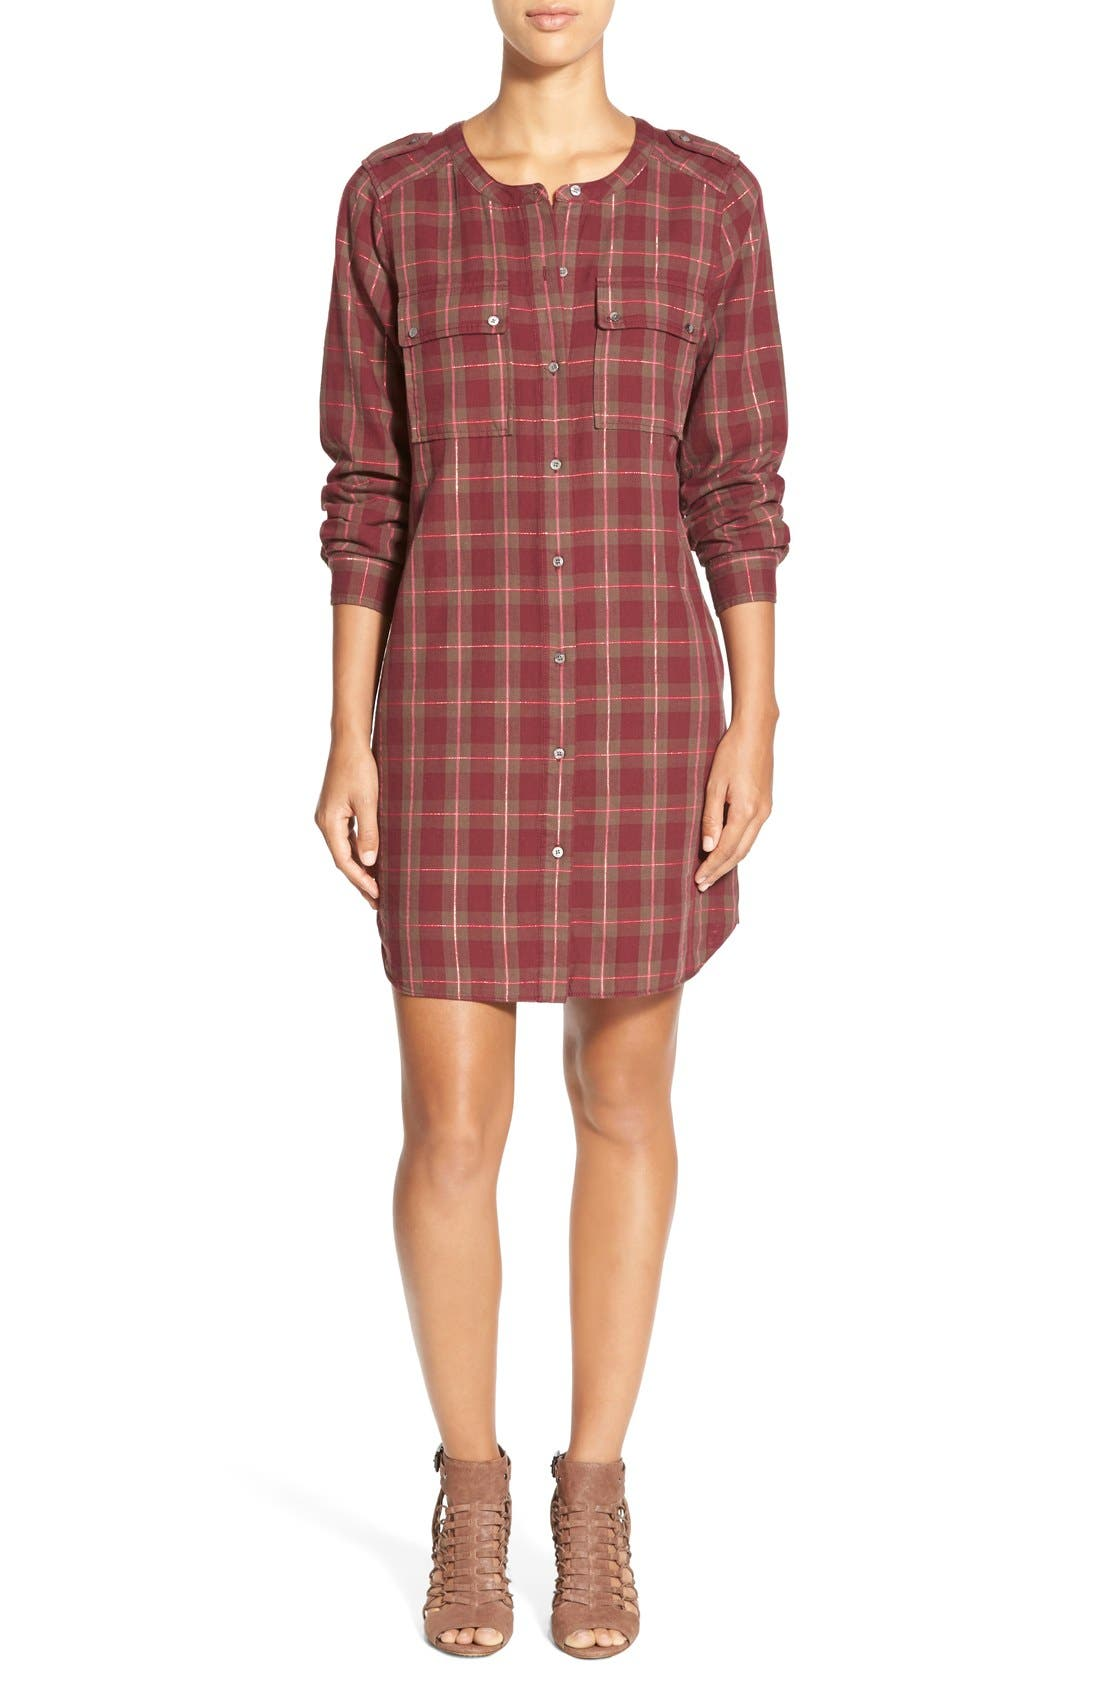 Main Image - Two by Vince CamutoPlaid Collarless Shirtdress